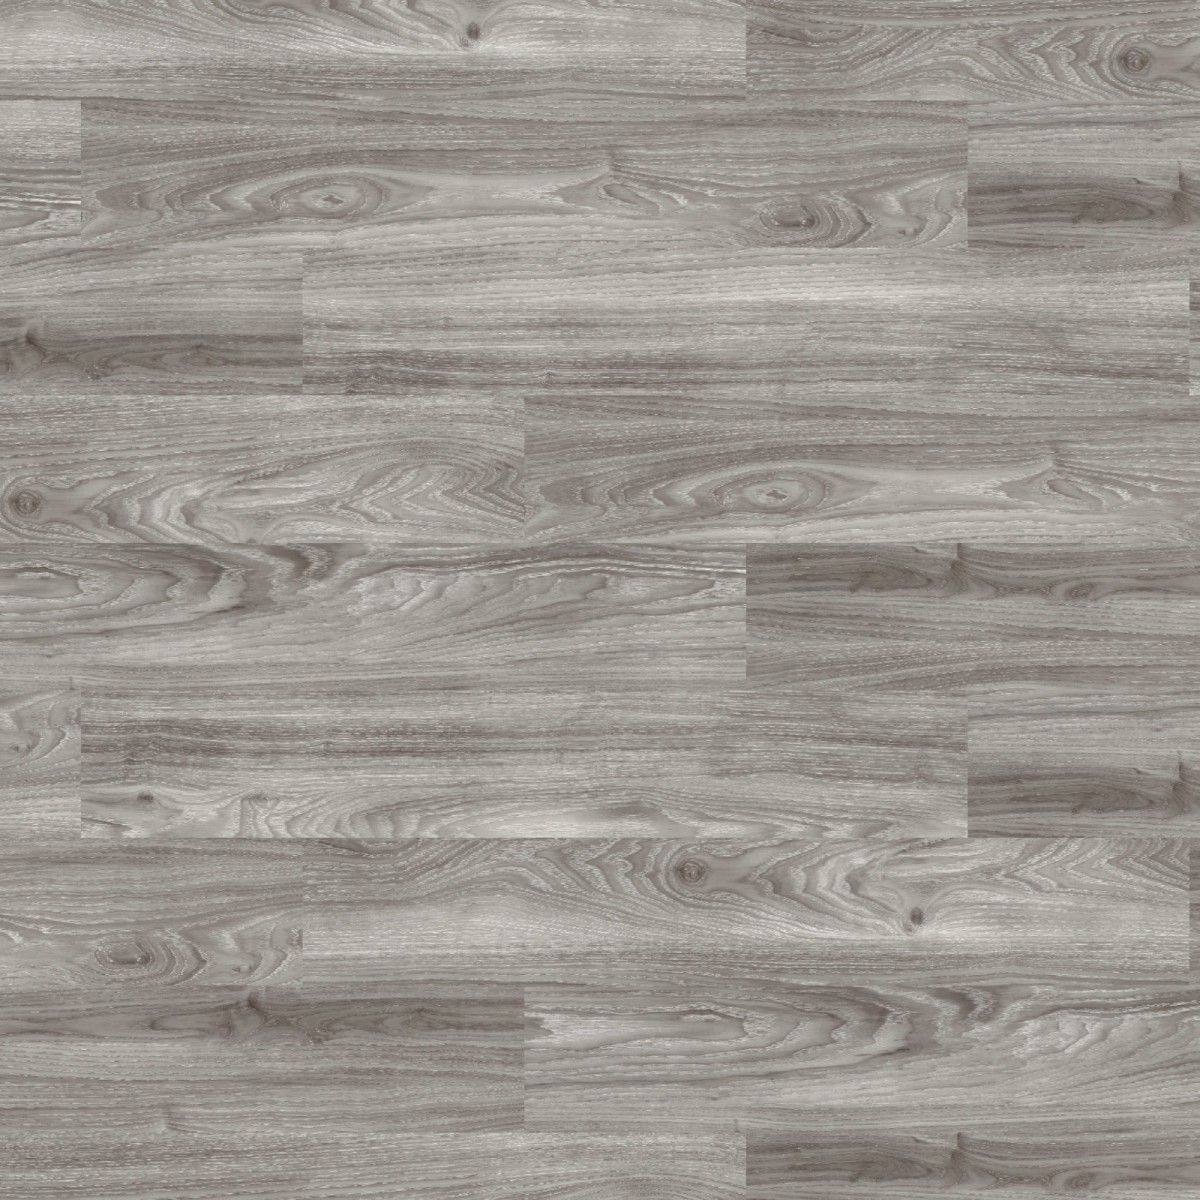 Gray Wooden Flooring